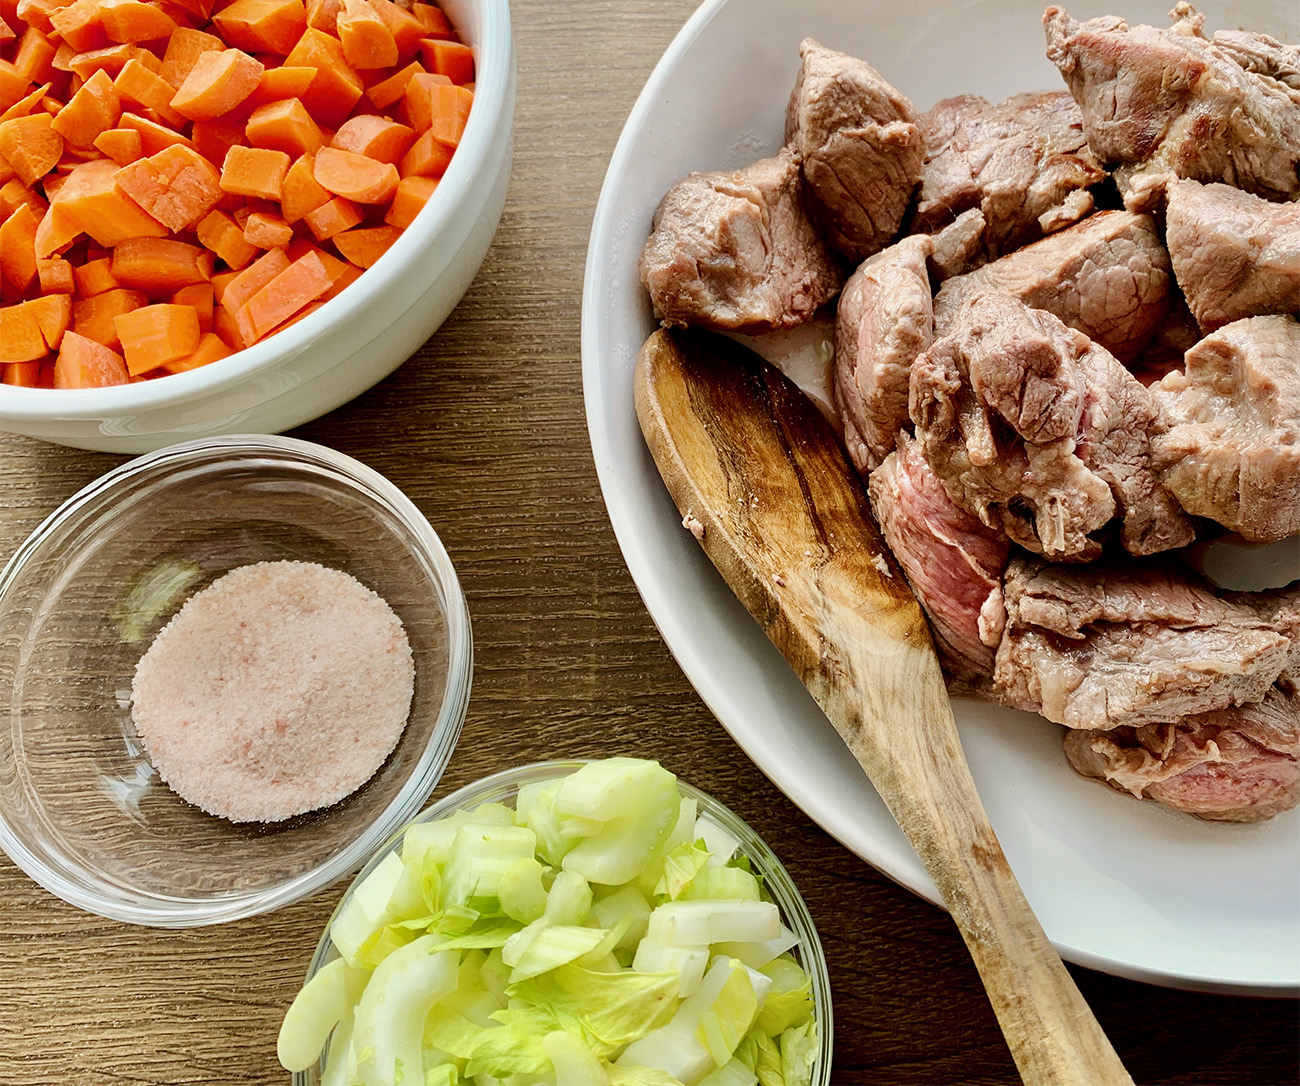 Browned Beef and bowls of ingredients for Instant Pot Beef Stew. Full Paleo recipe